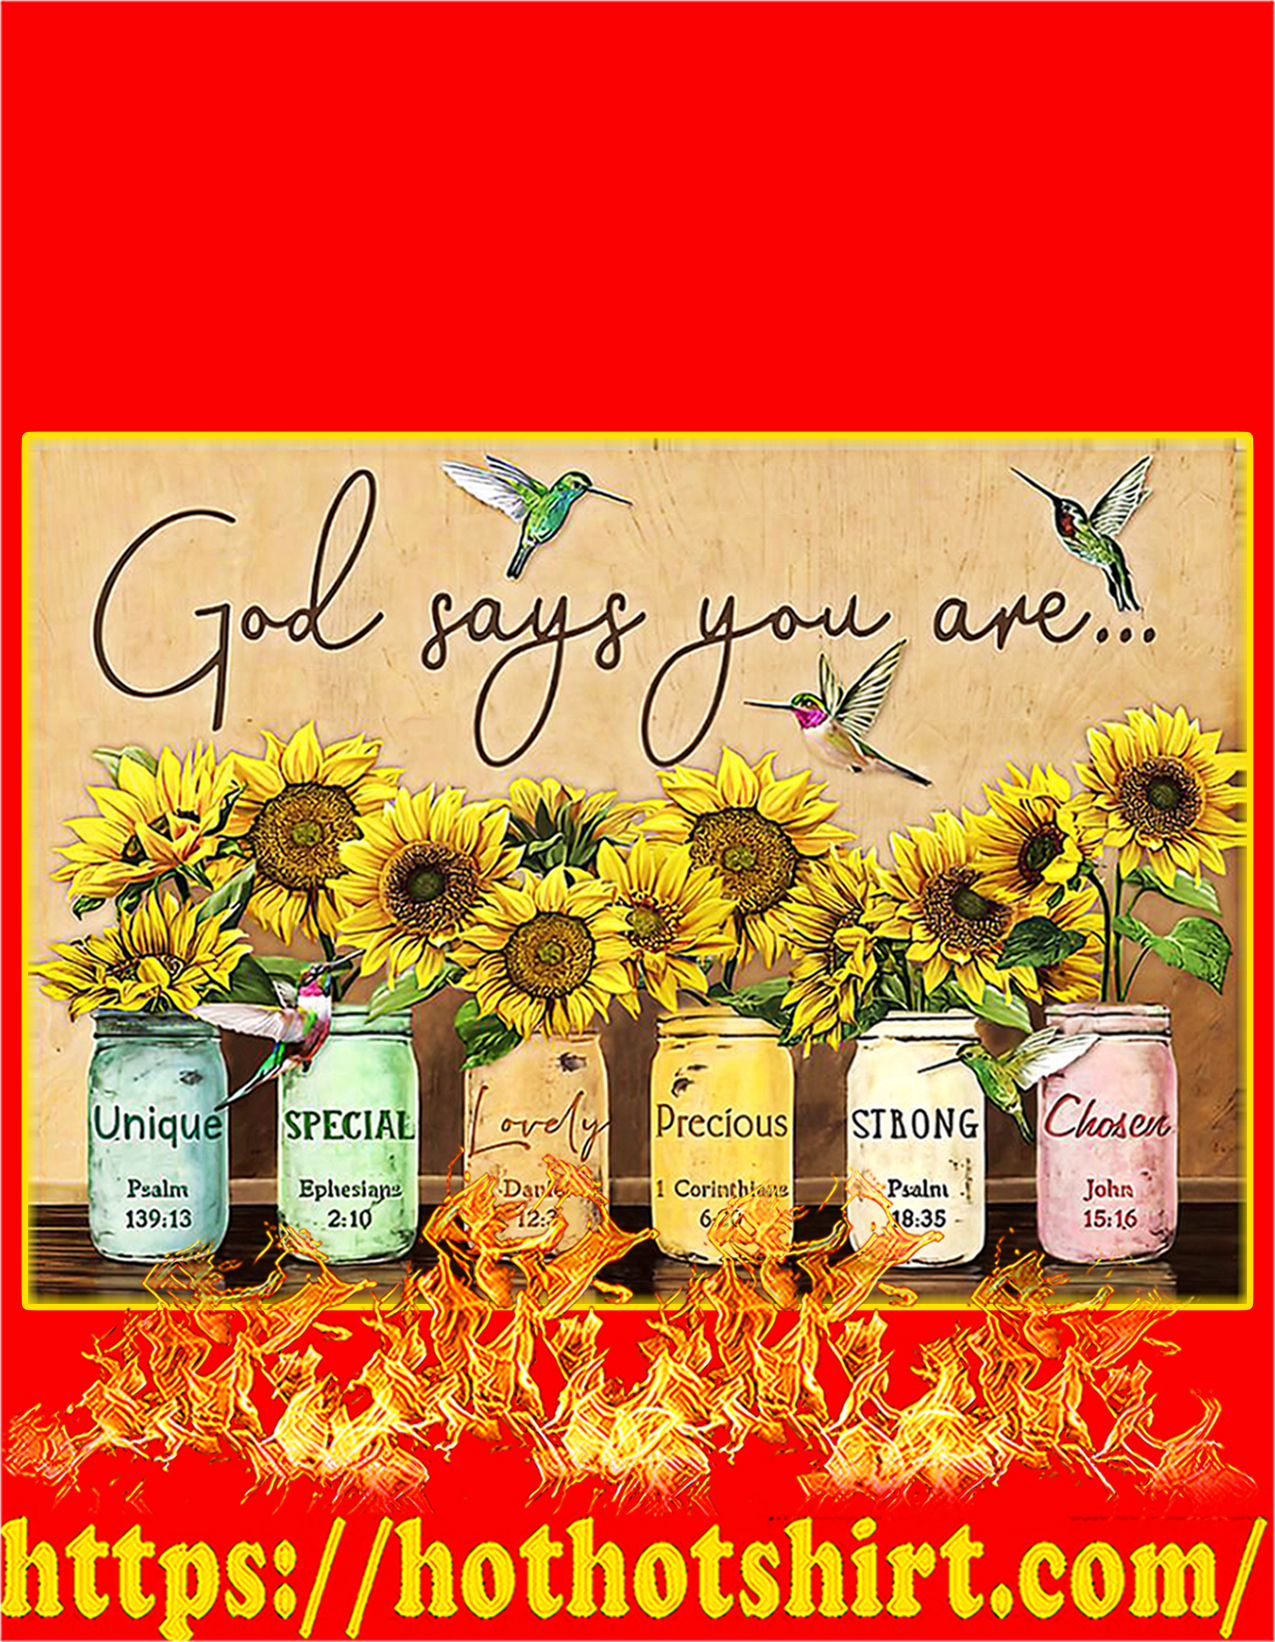 God says you are poster - A2